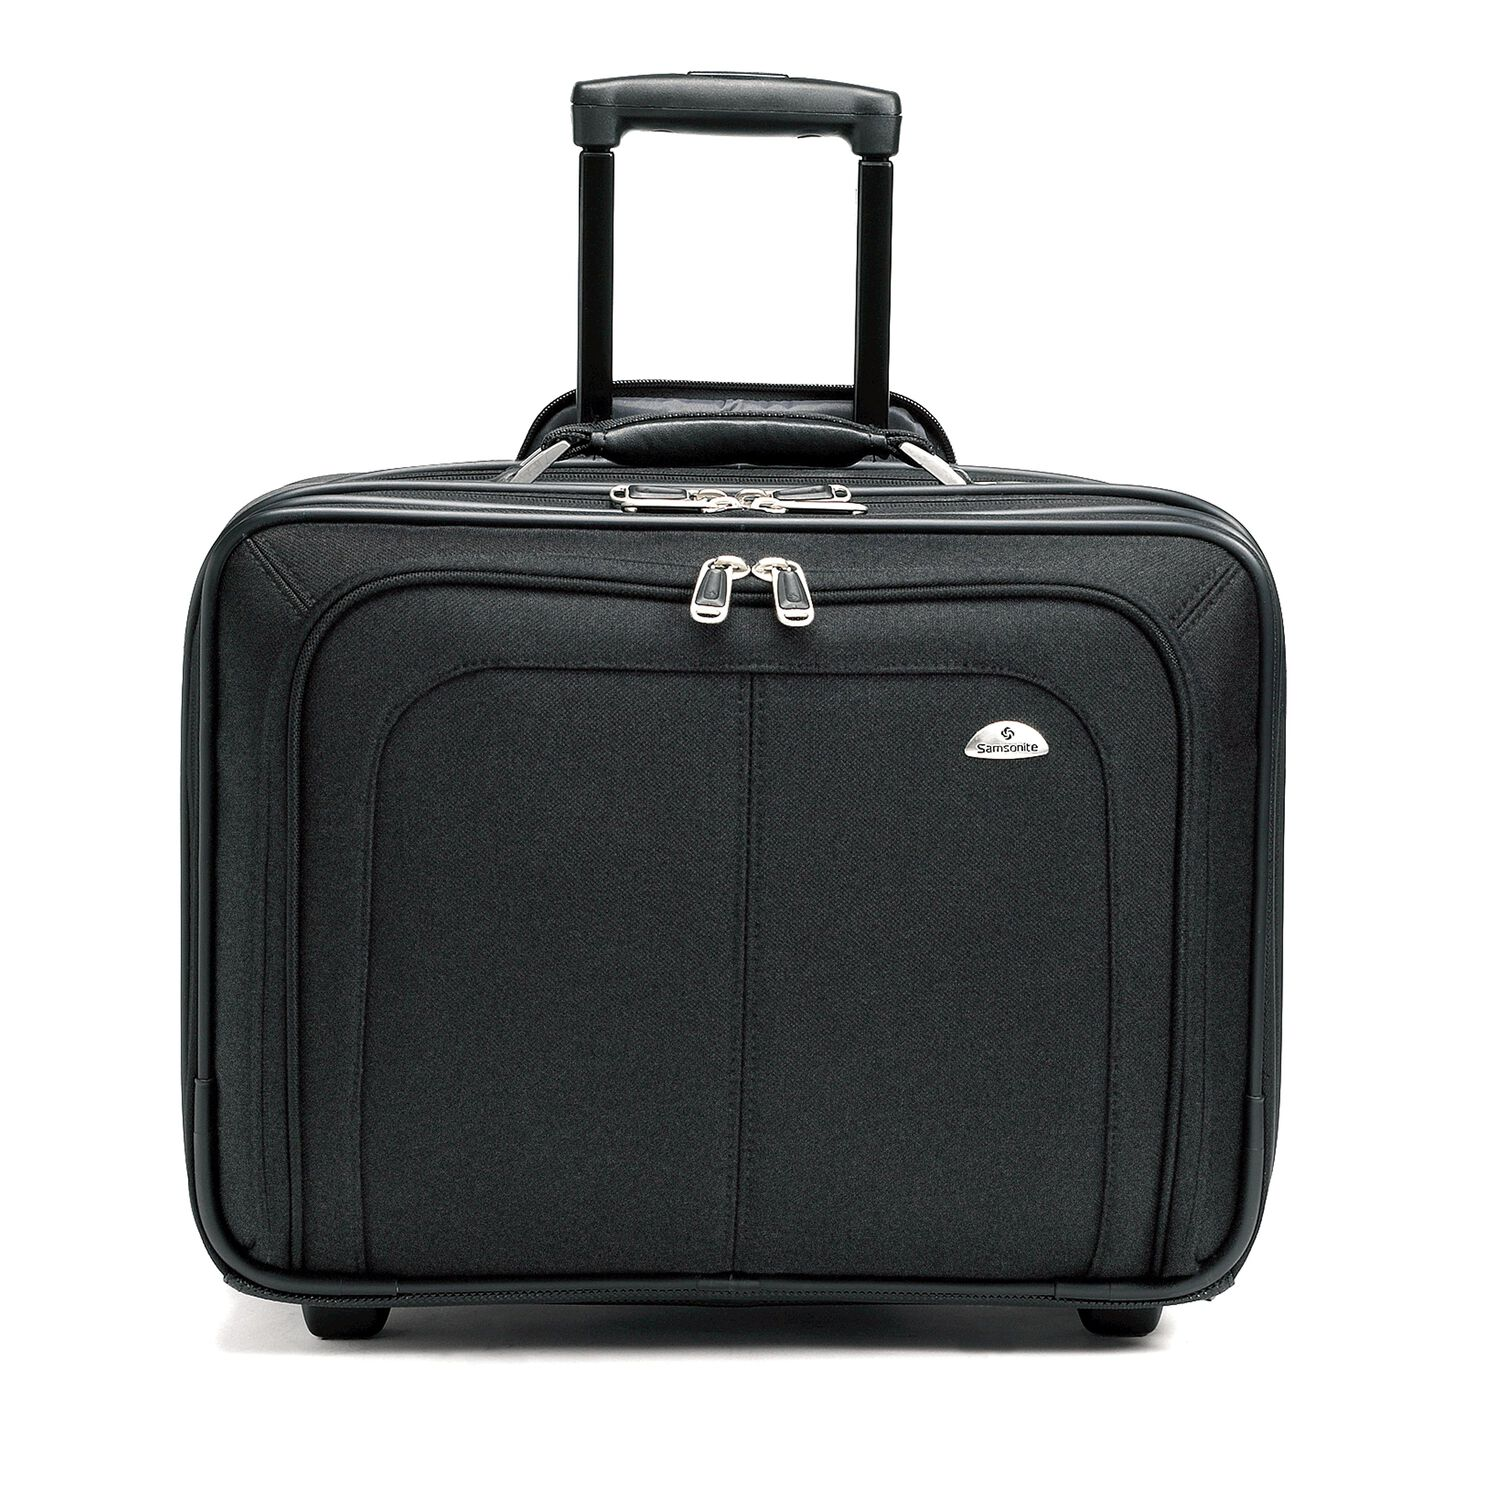 Samsonite Business One Mobile Office In The Color Black